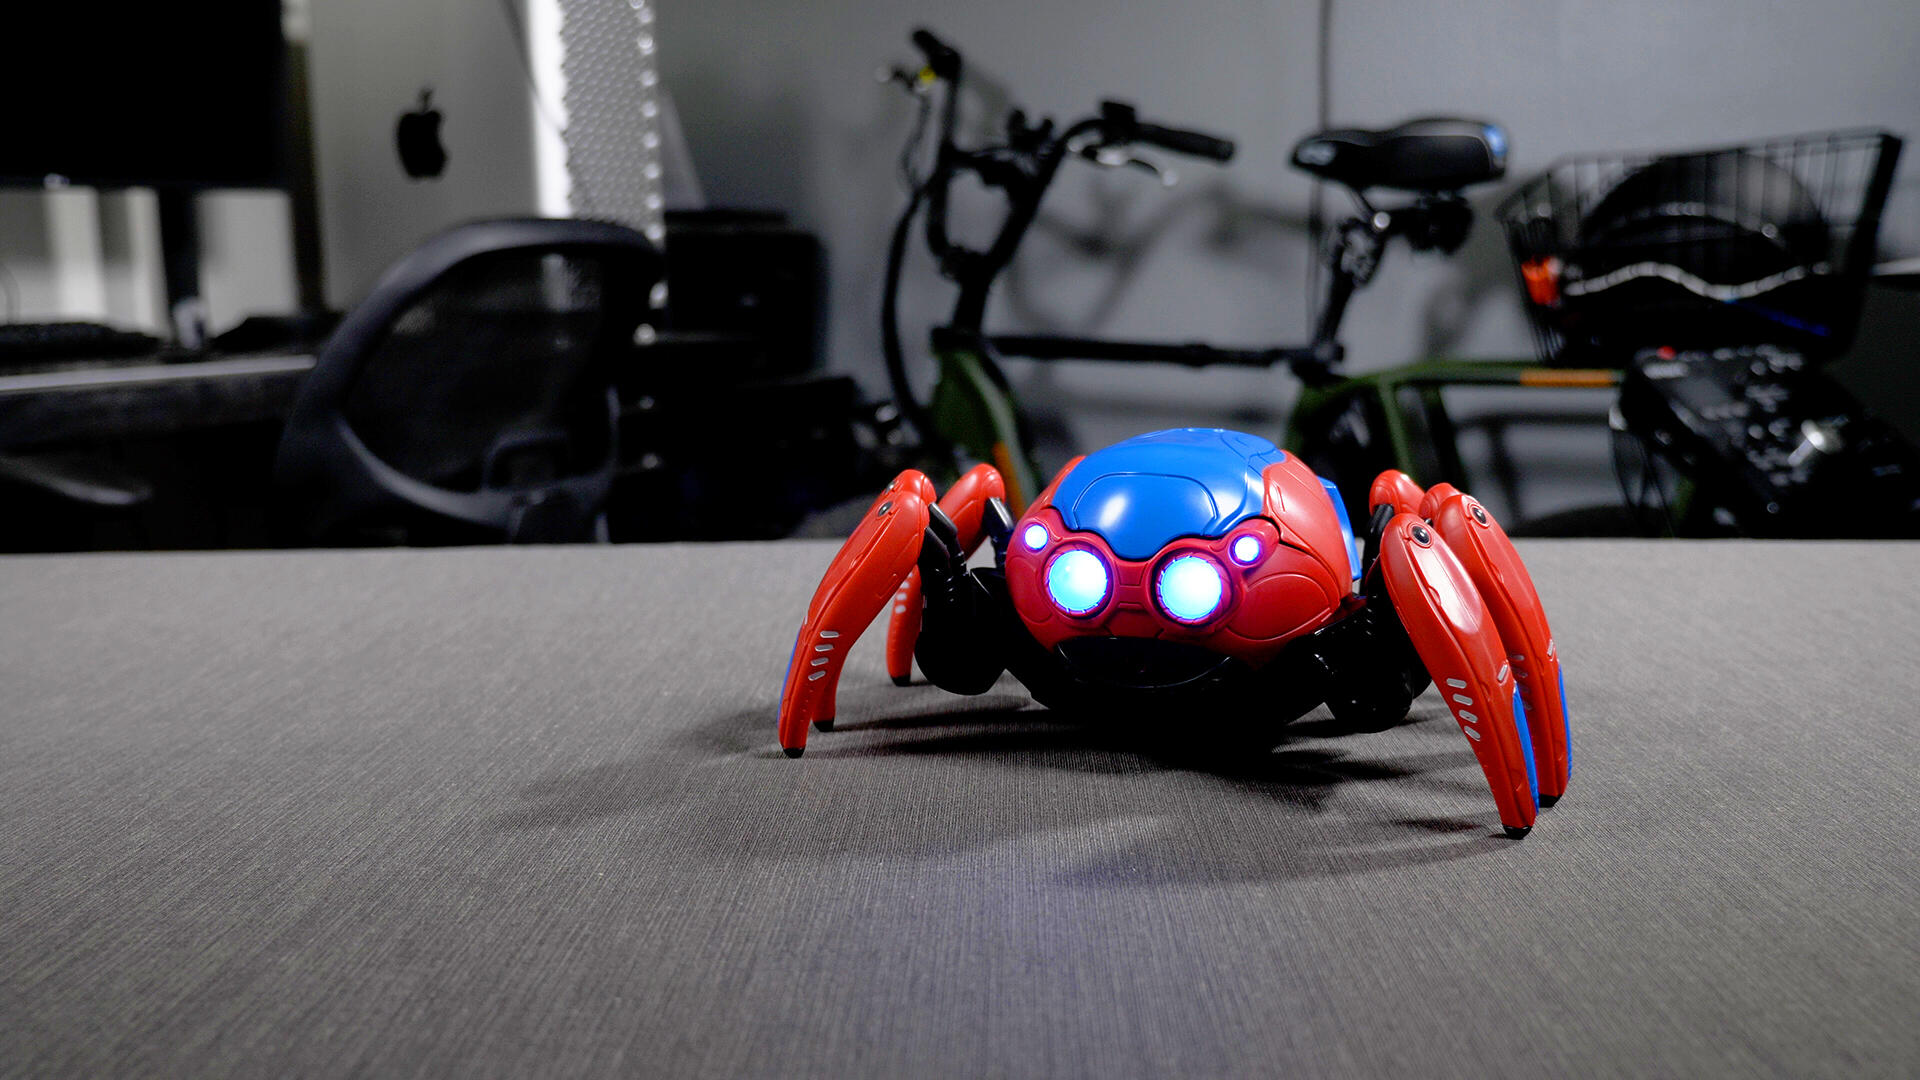 Video: Interactive Spider-Bot unboxing